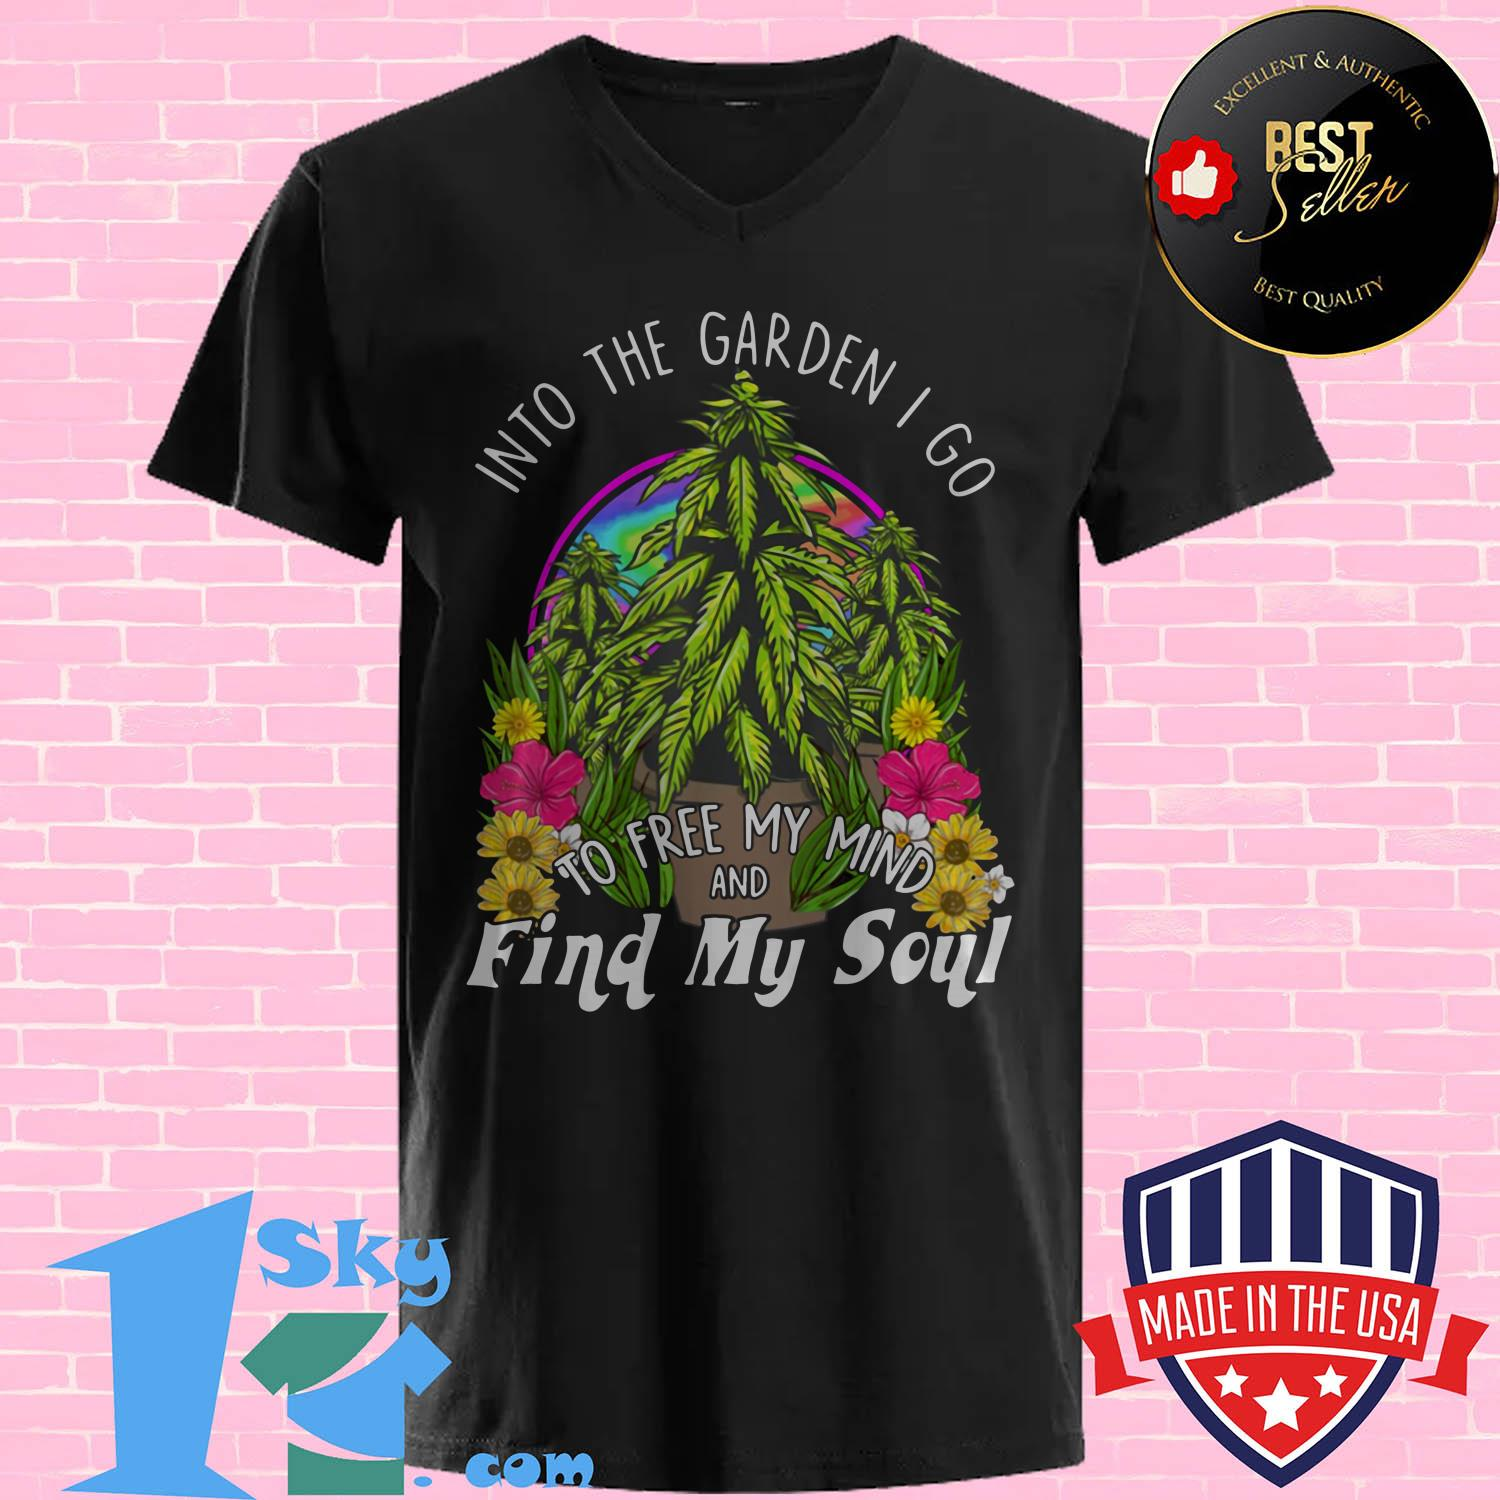 into the garden i go to free my mind and find my soul v neck - Into The Garden I Go To Free My Mind And Find My Soul shirt